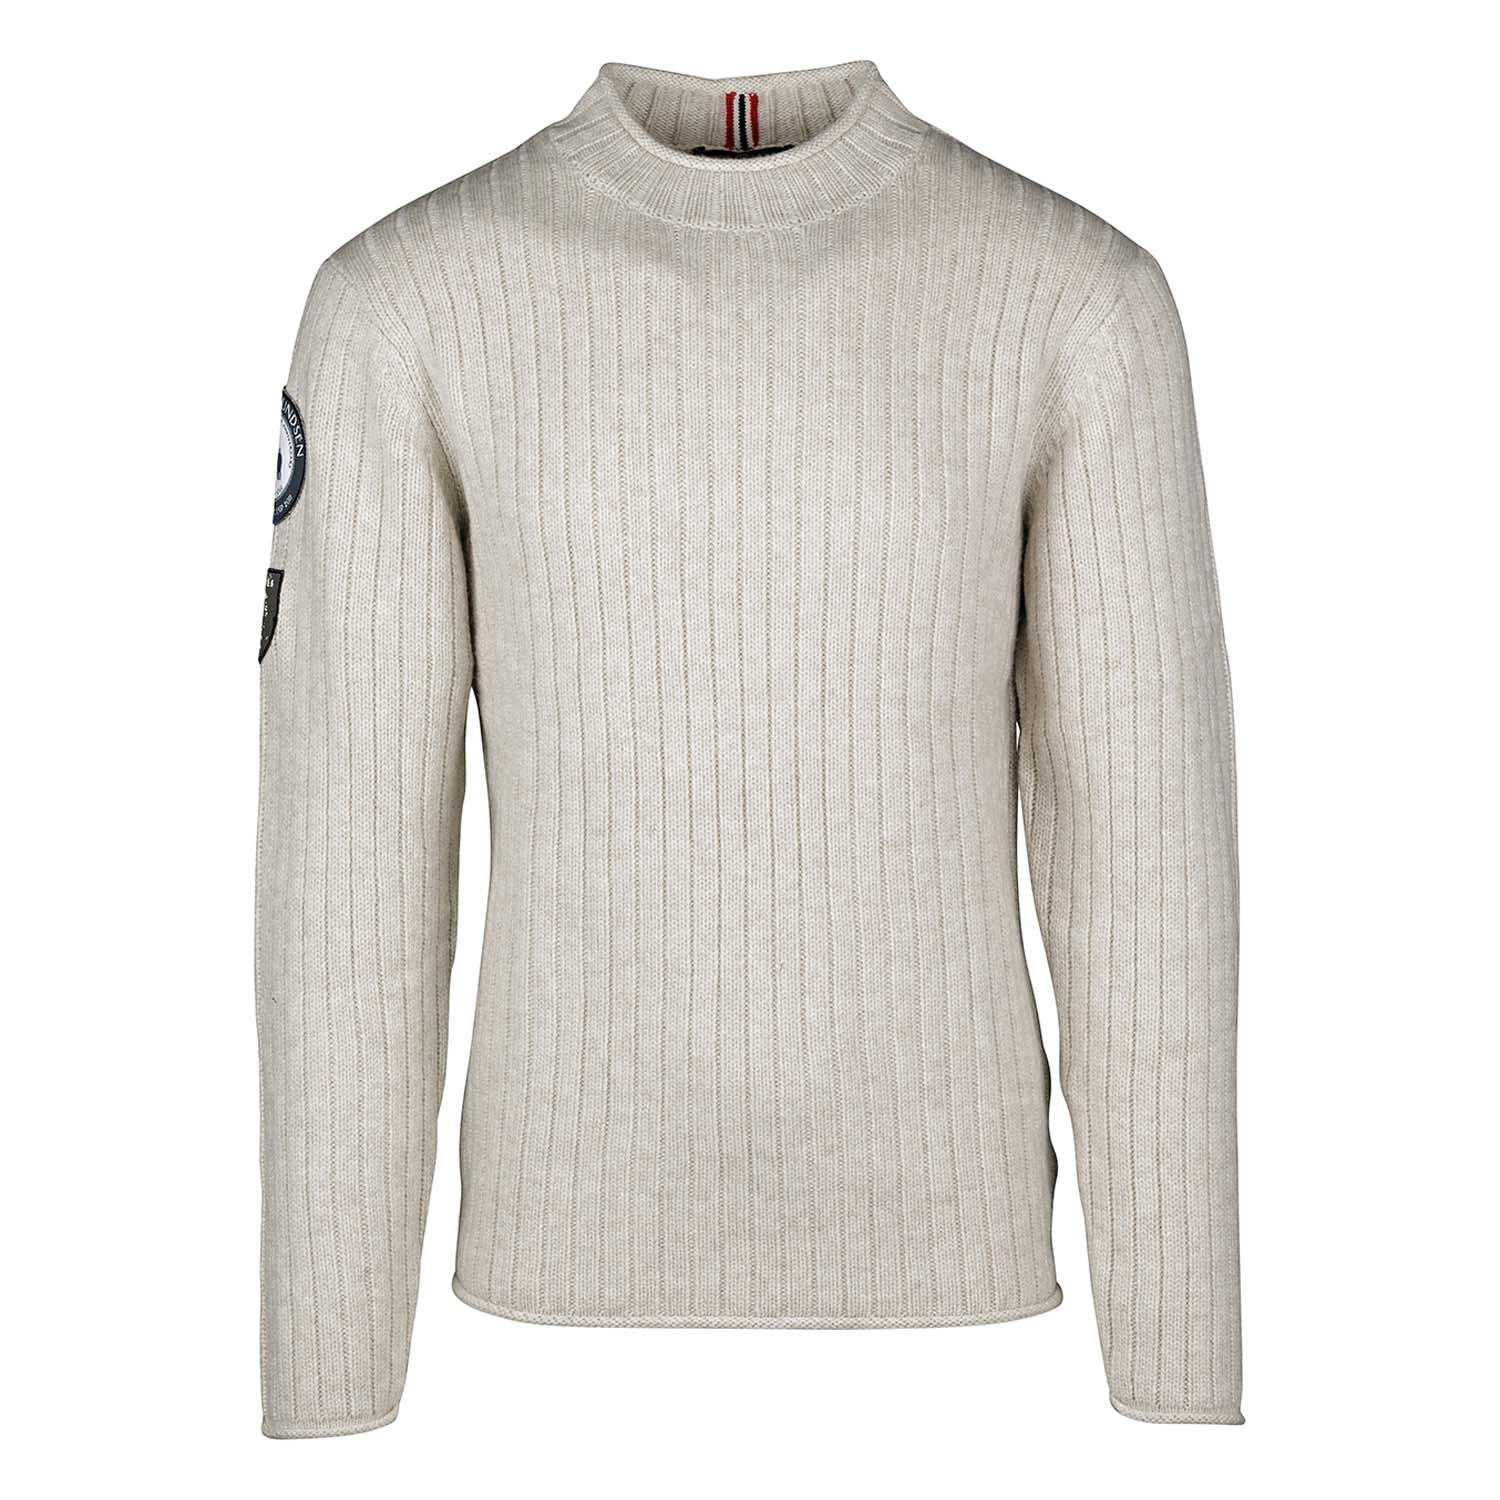 Amundsen Roald Roll Neck Sweater Oatmeal 2020